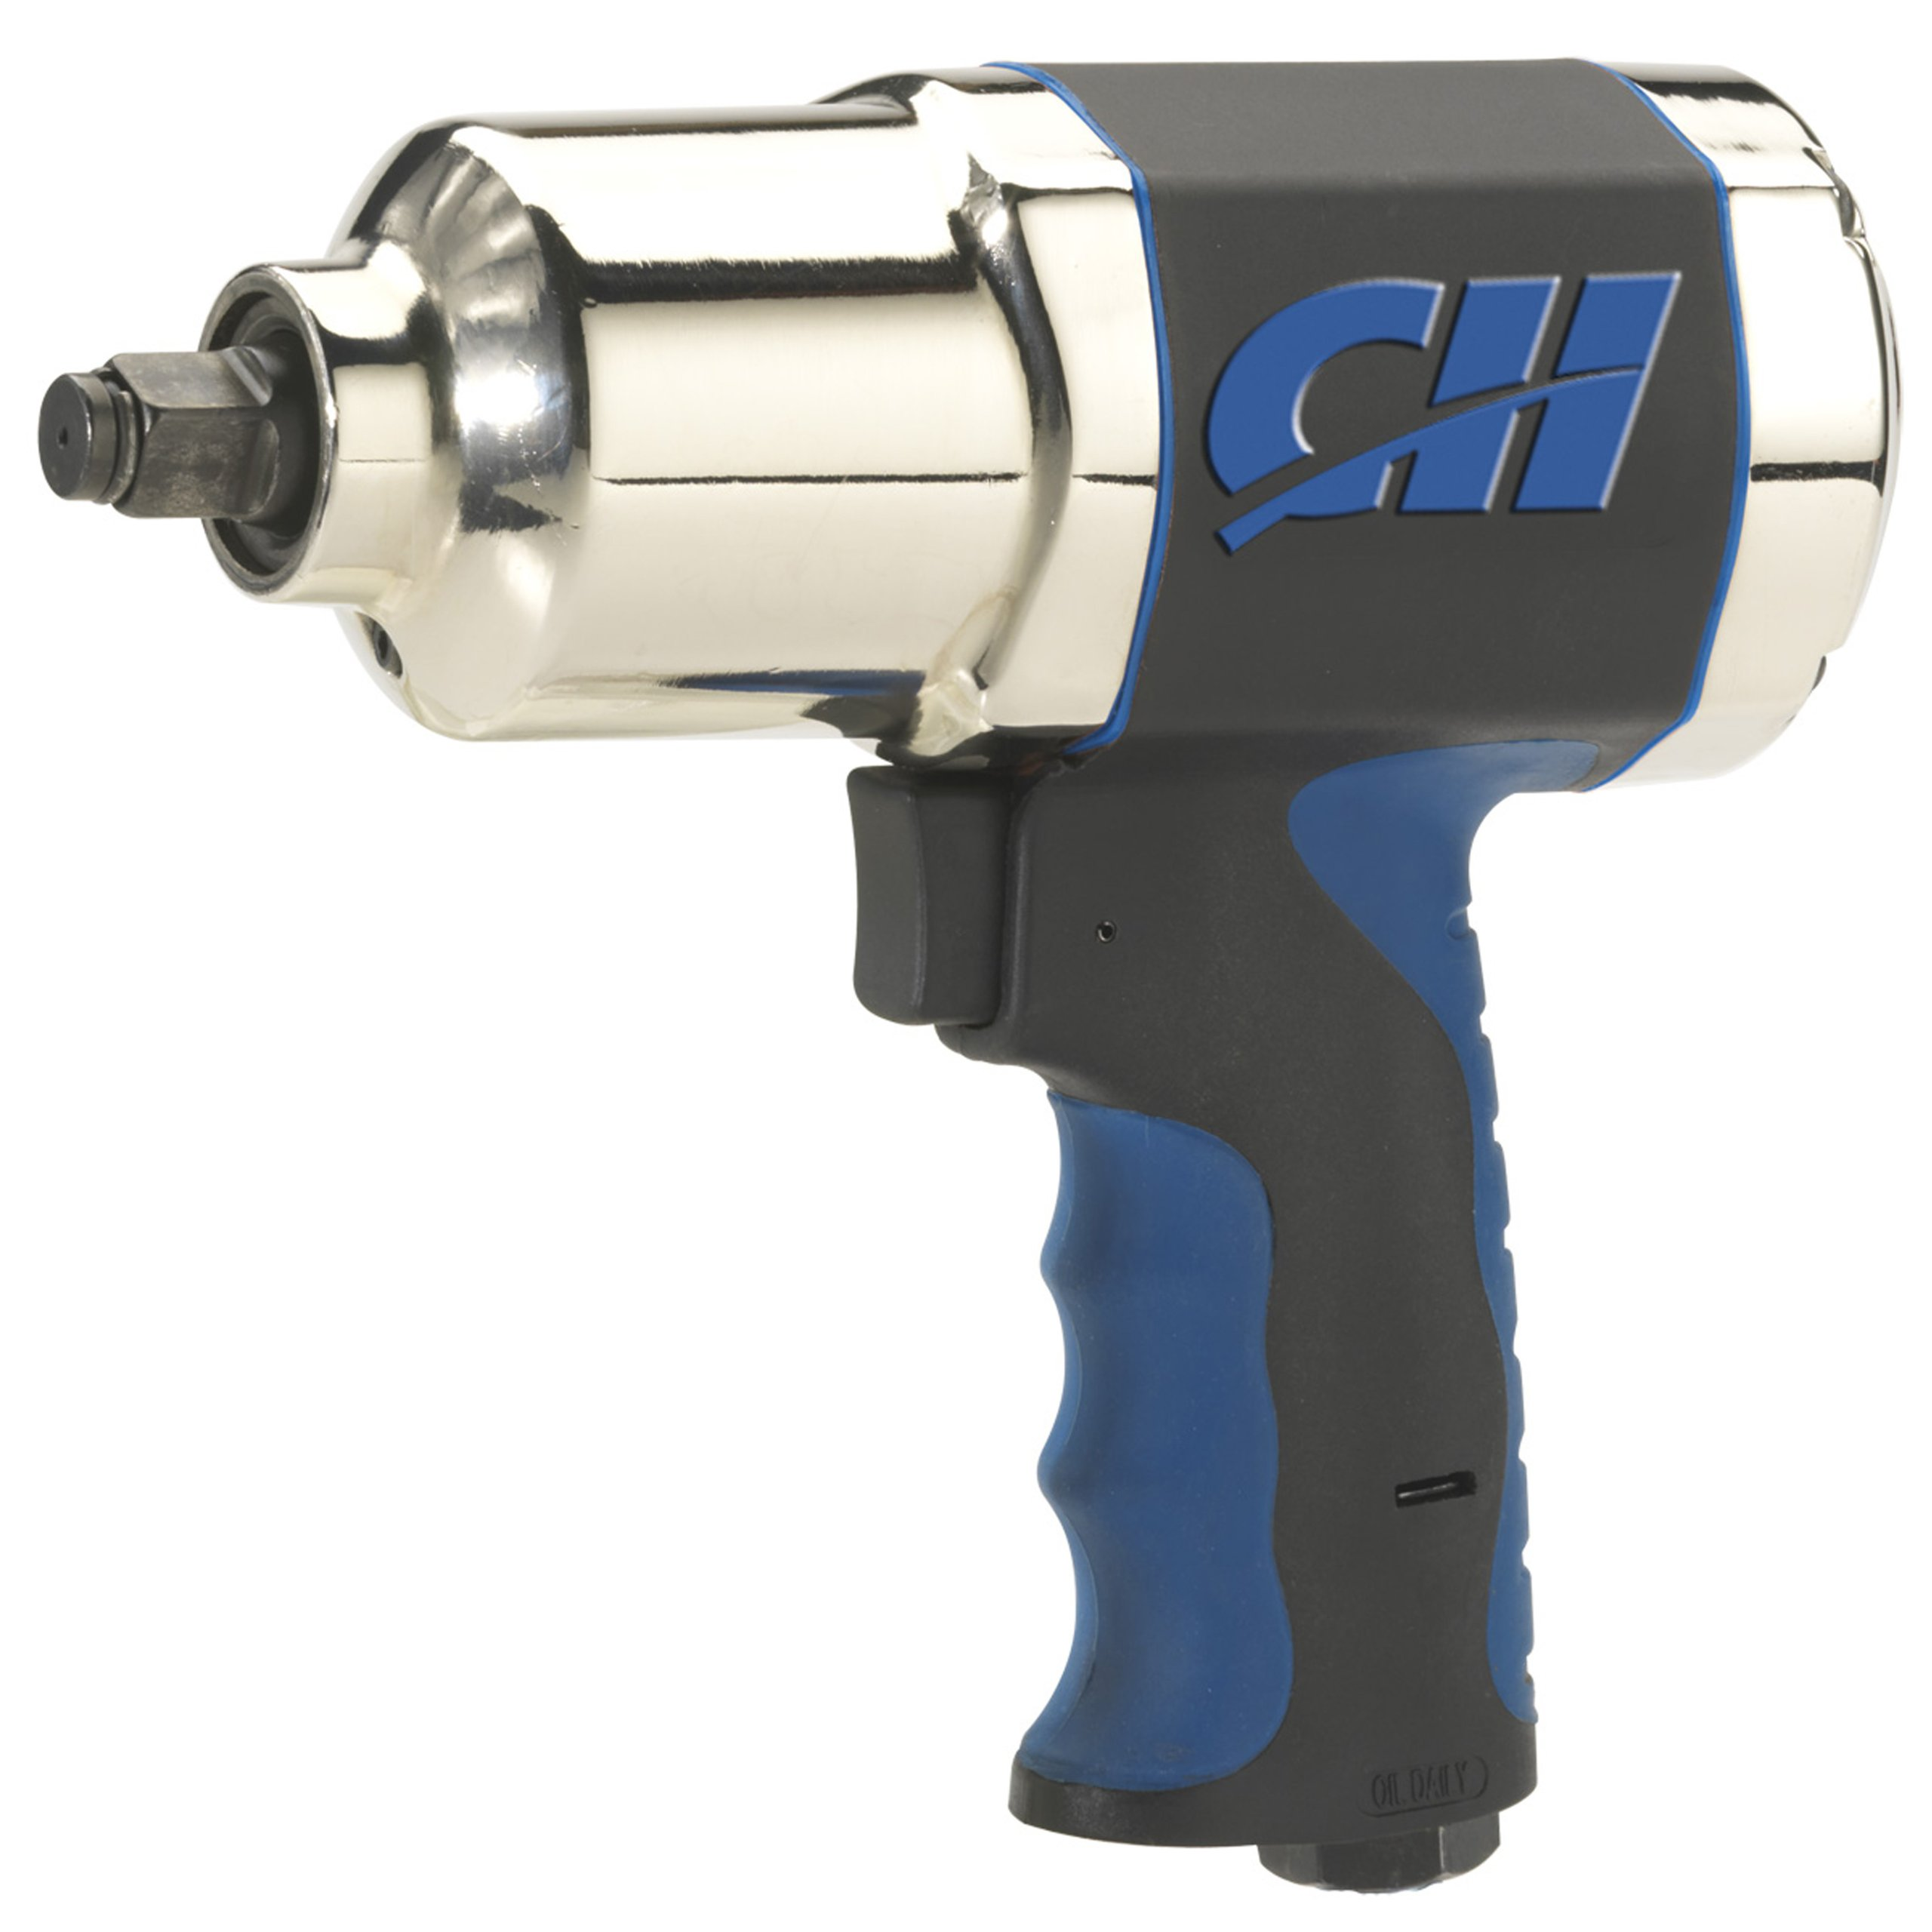 1/2'' Impact Wrench, Air Impact Driver W/550'/Lbs Torque (Campbell Hausfeld TL140200AV) by Campbell Hausfeld (Image #1)